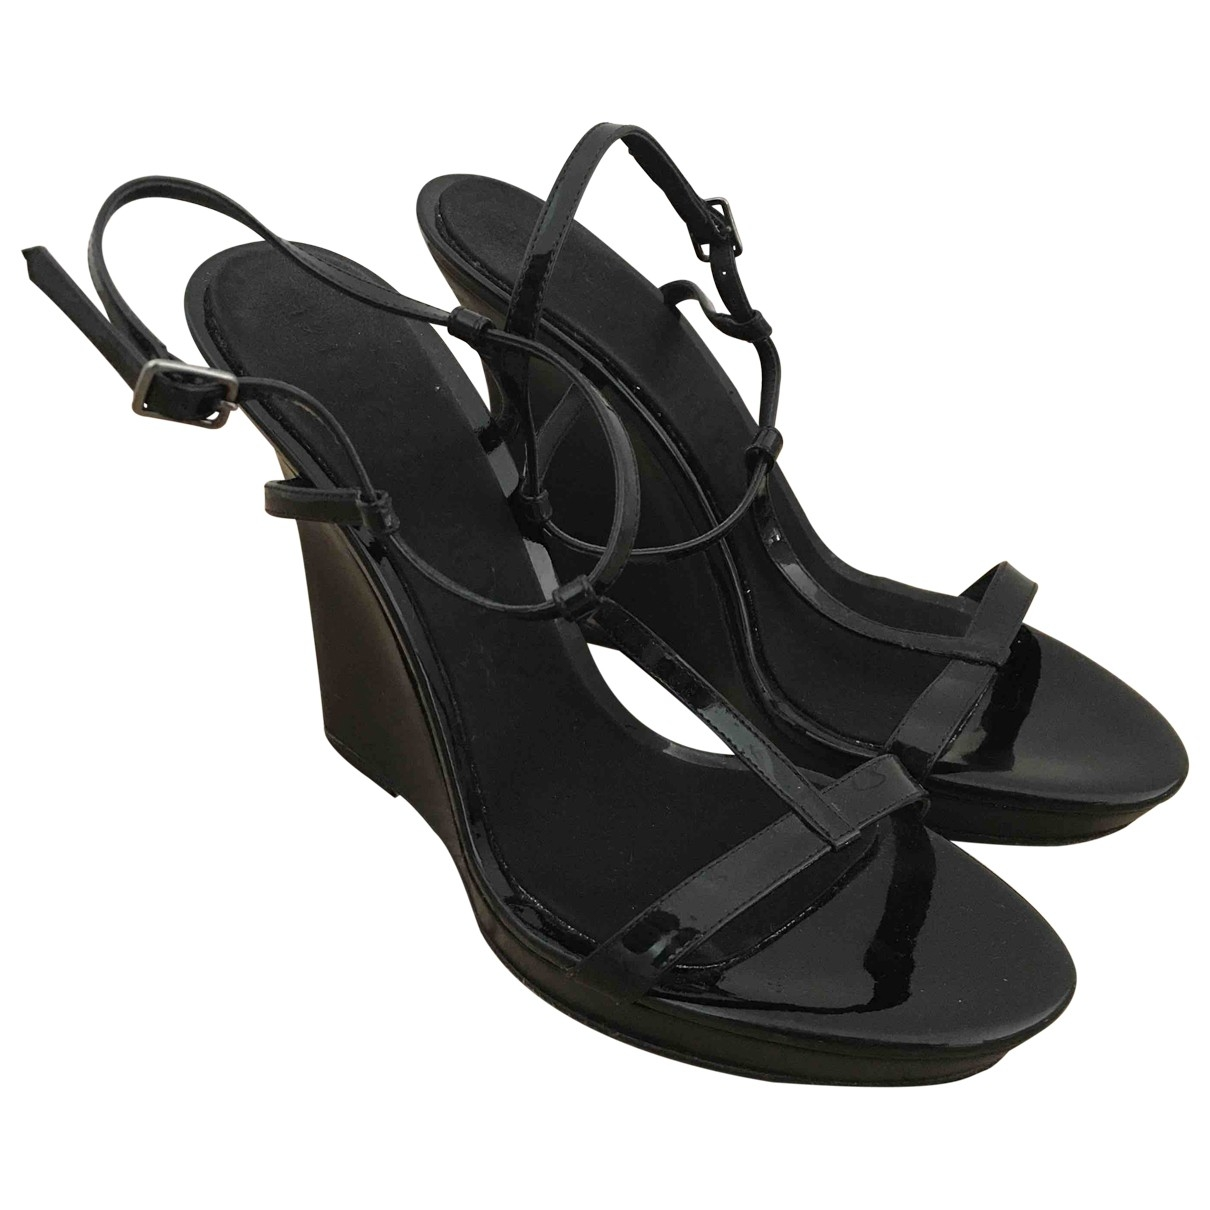 Burberry \N Black Patent leather Sandals for Women 39 EU